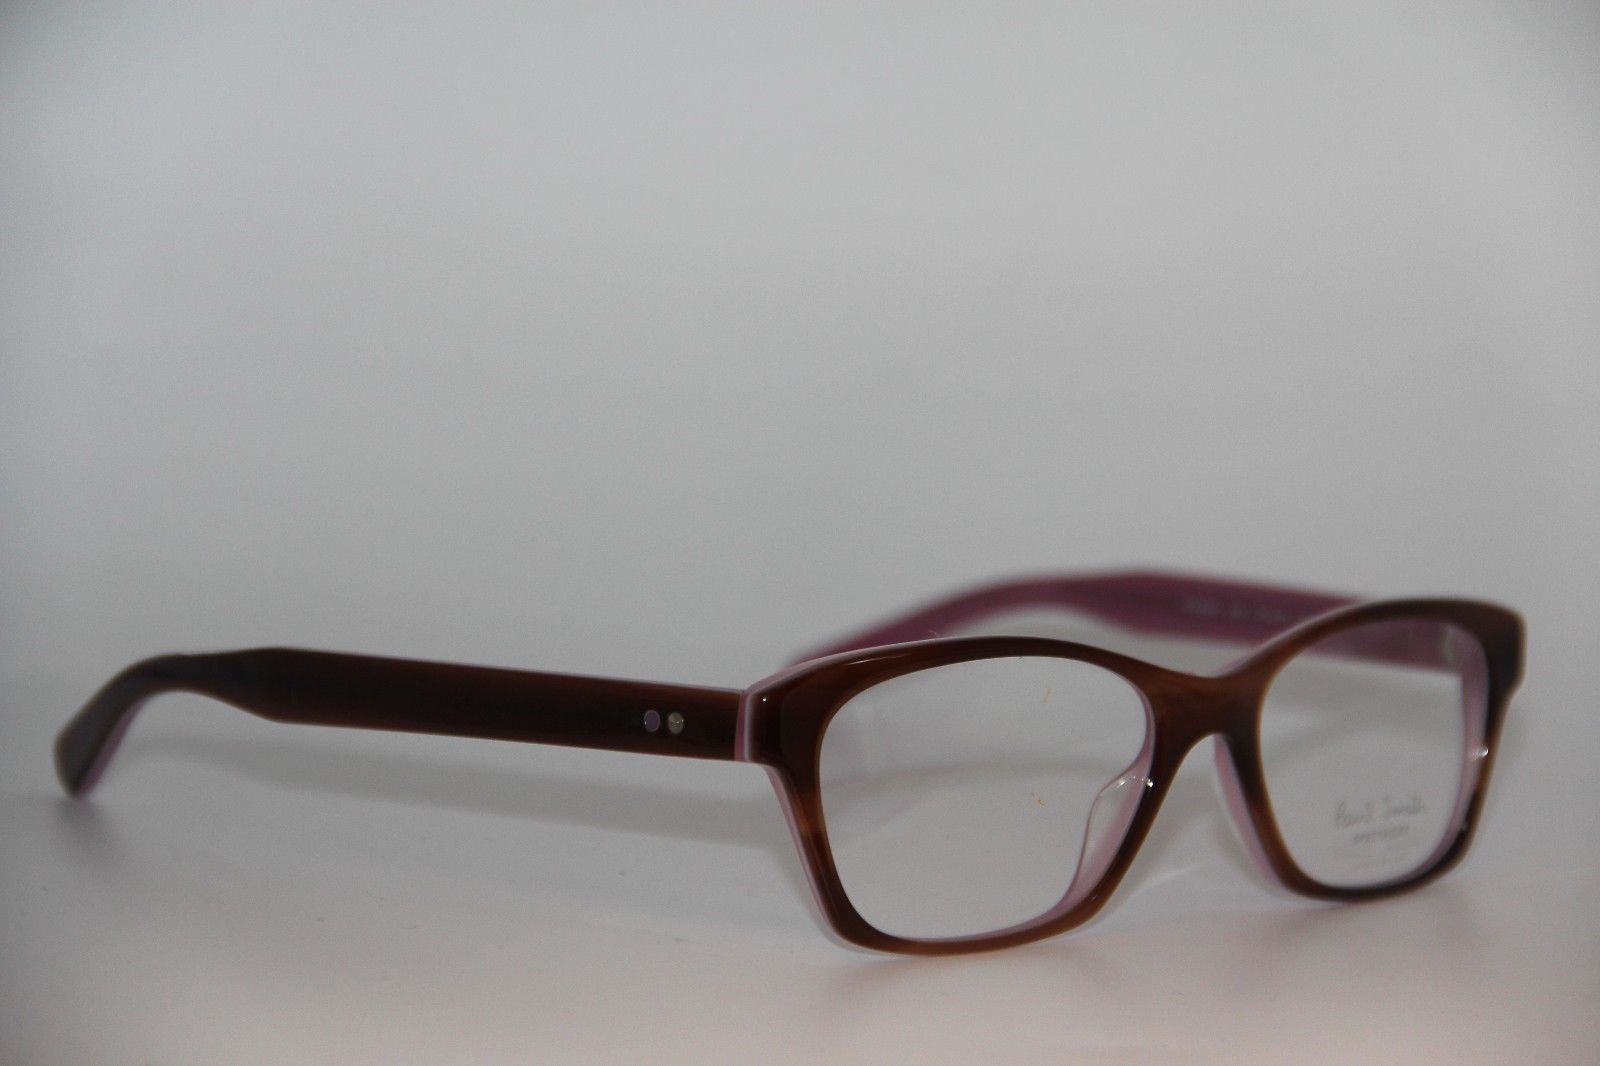 6d7cdb1f806 NEW PAUL SMITH PM 8056 1215 PS-423 HAVANA EYEGLASSES AUTHENTIC RX PM8056 51-